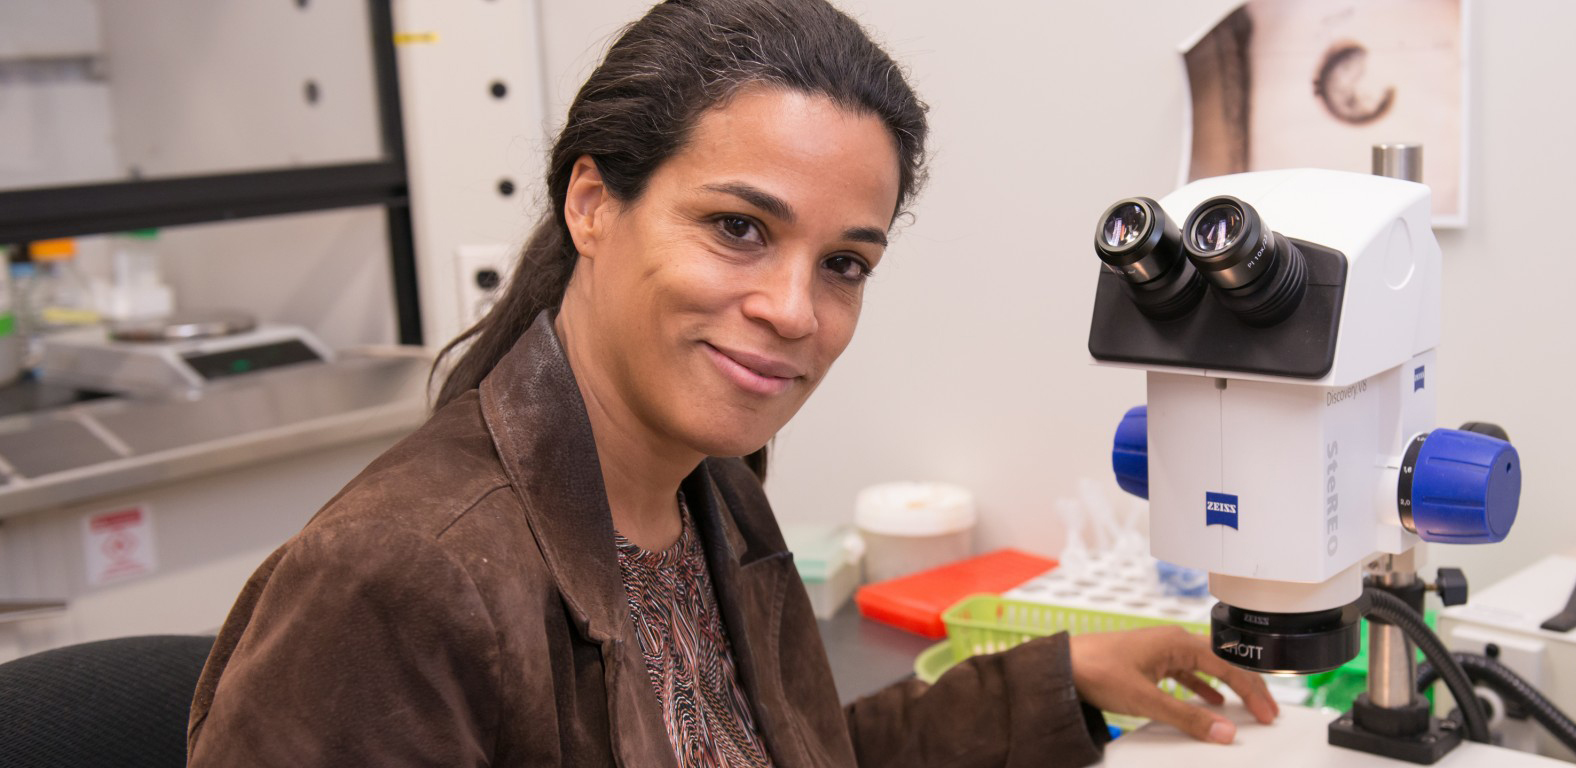 UMBC biologist receives NIH award to continue transplant research